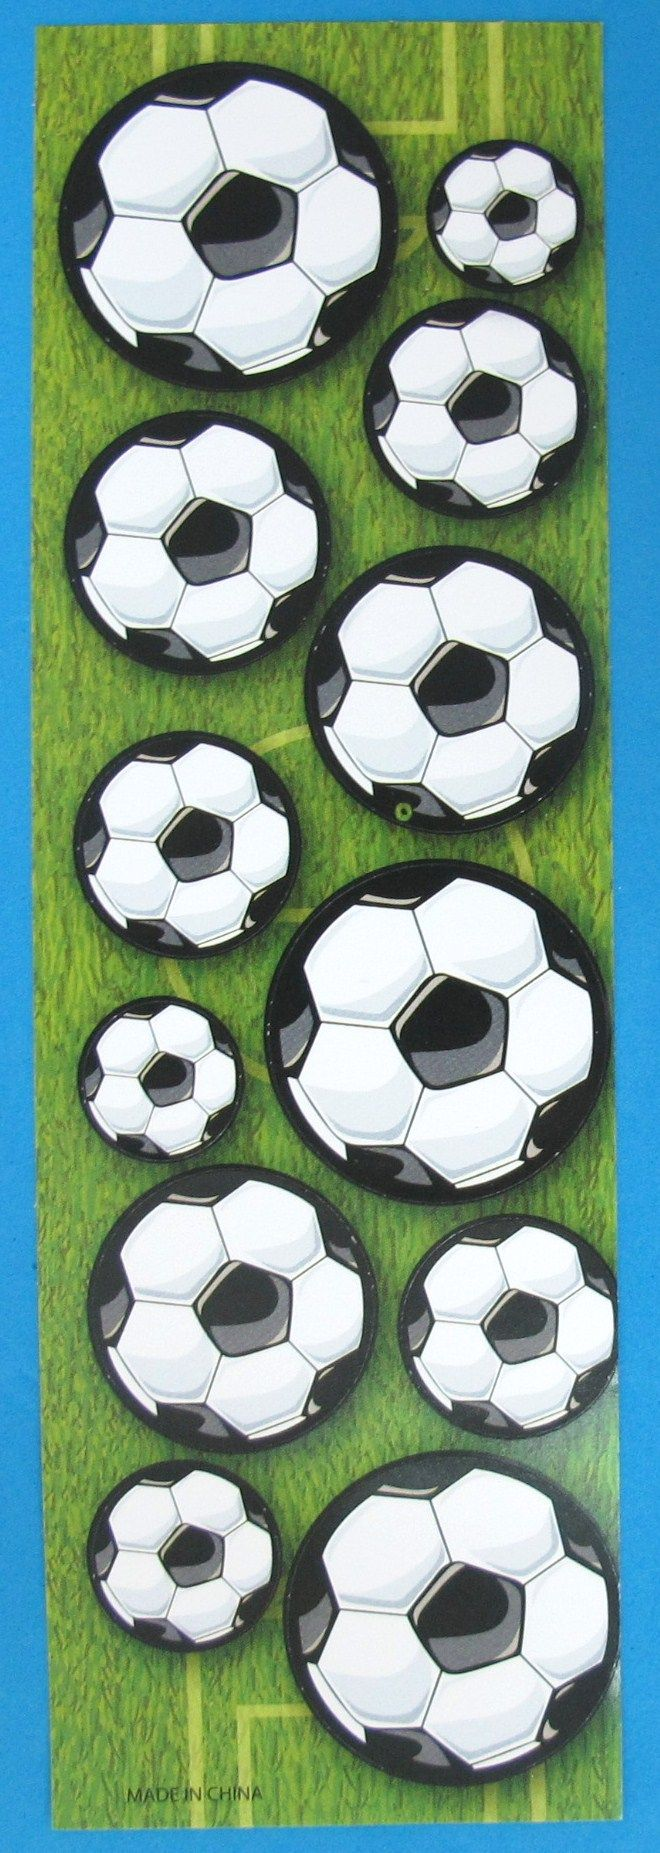 Football stickers are a great way to personalise belongings